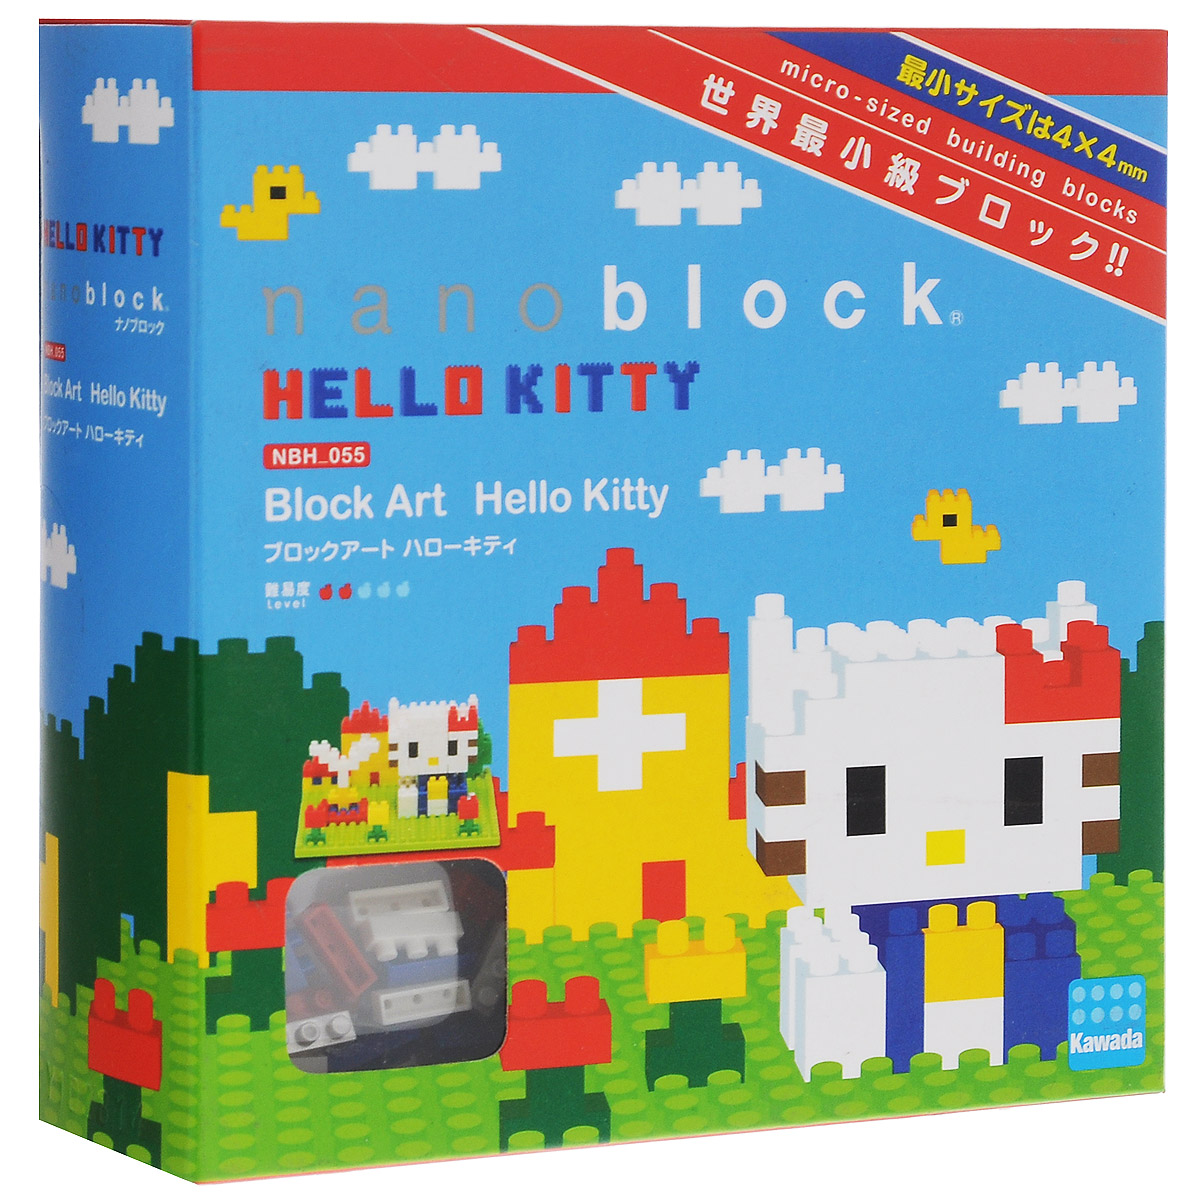 Nanoblock Мини-конструктор Hello Kitty в парке лего википедия на русском